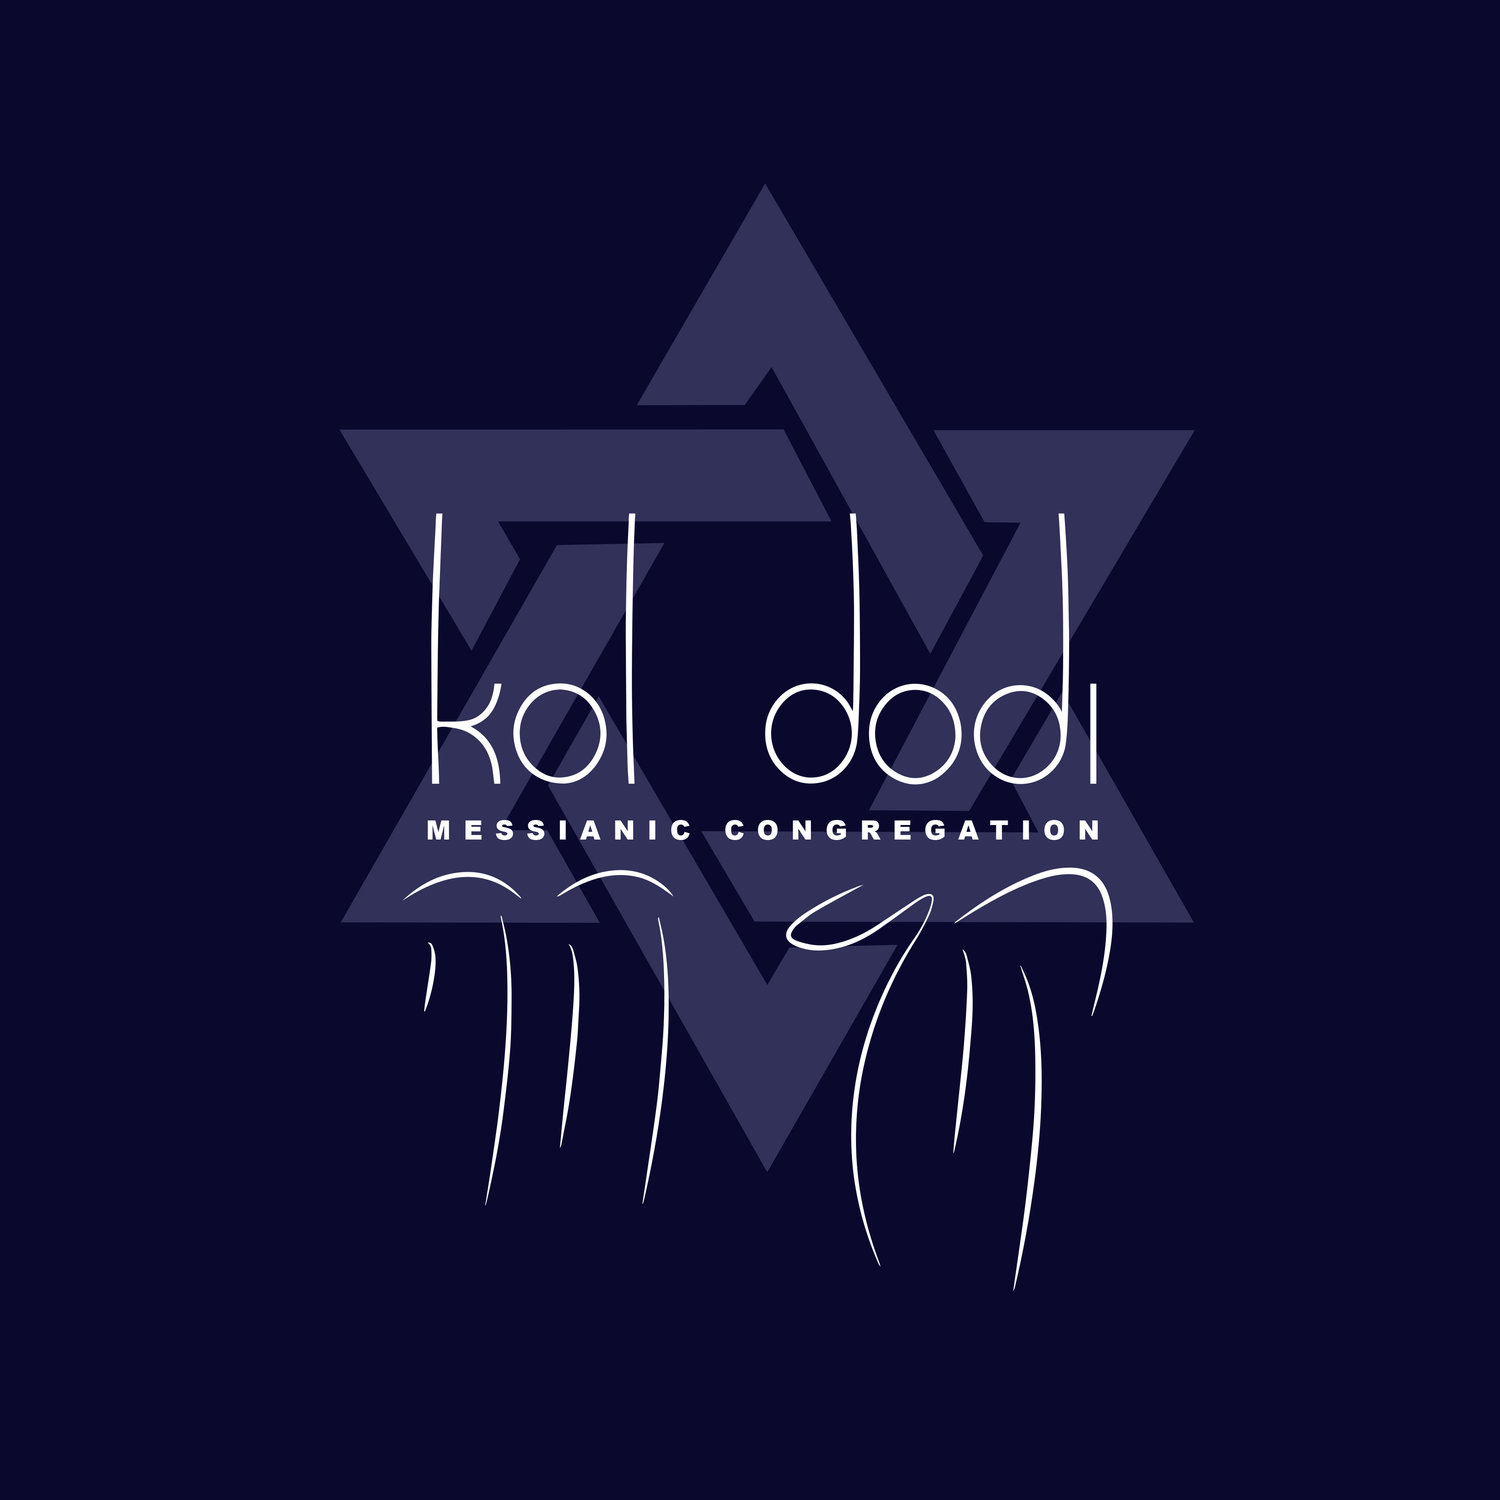 Kol Dodi Messianic Congregation